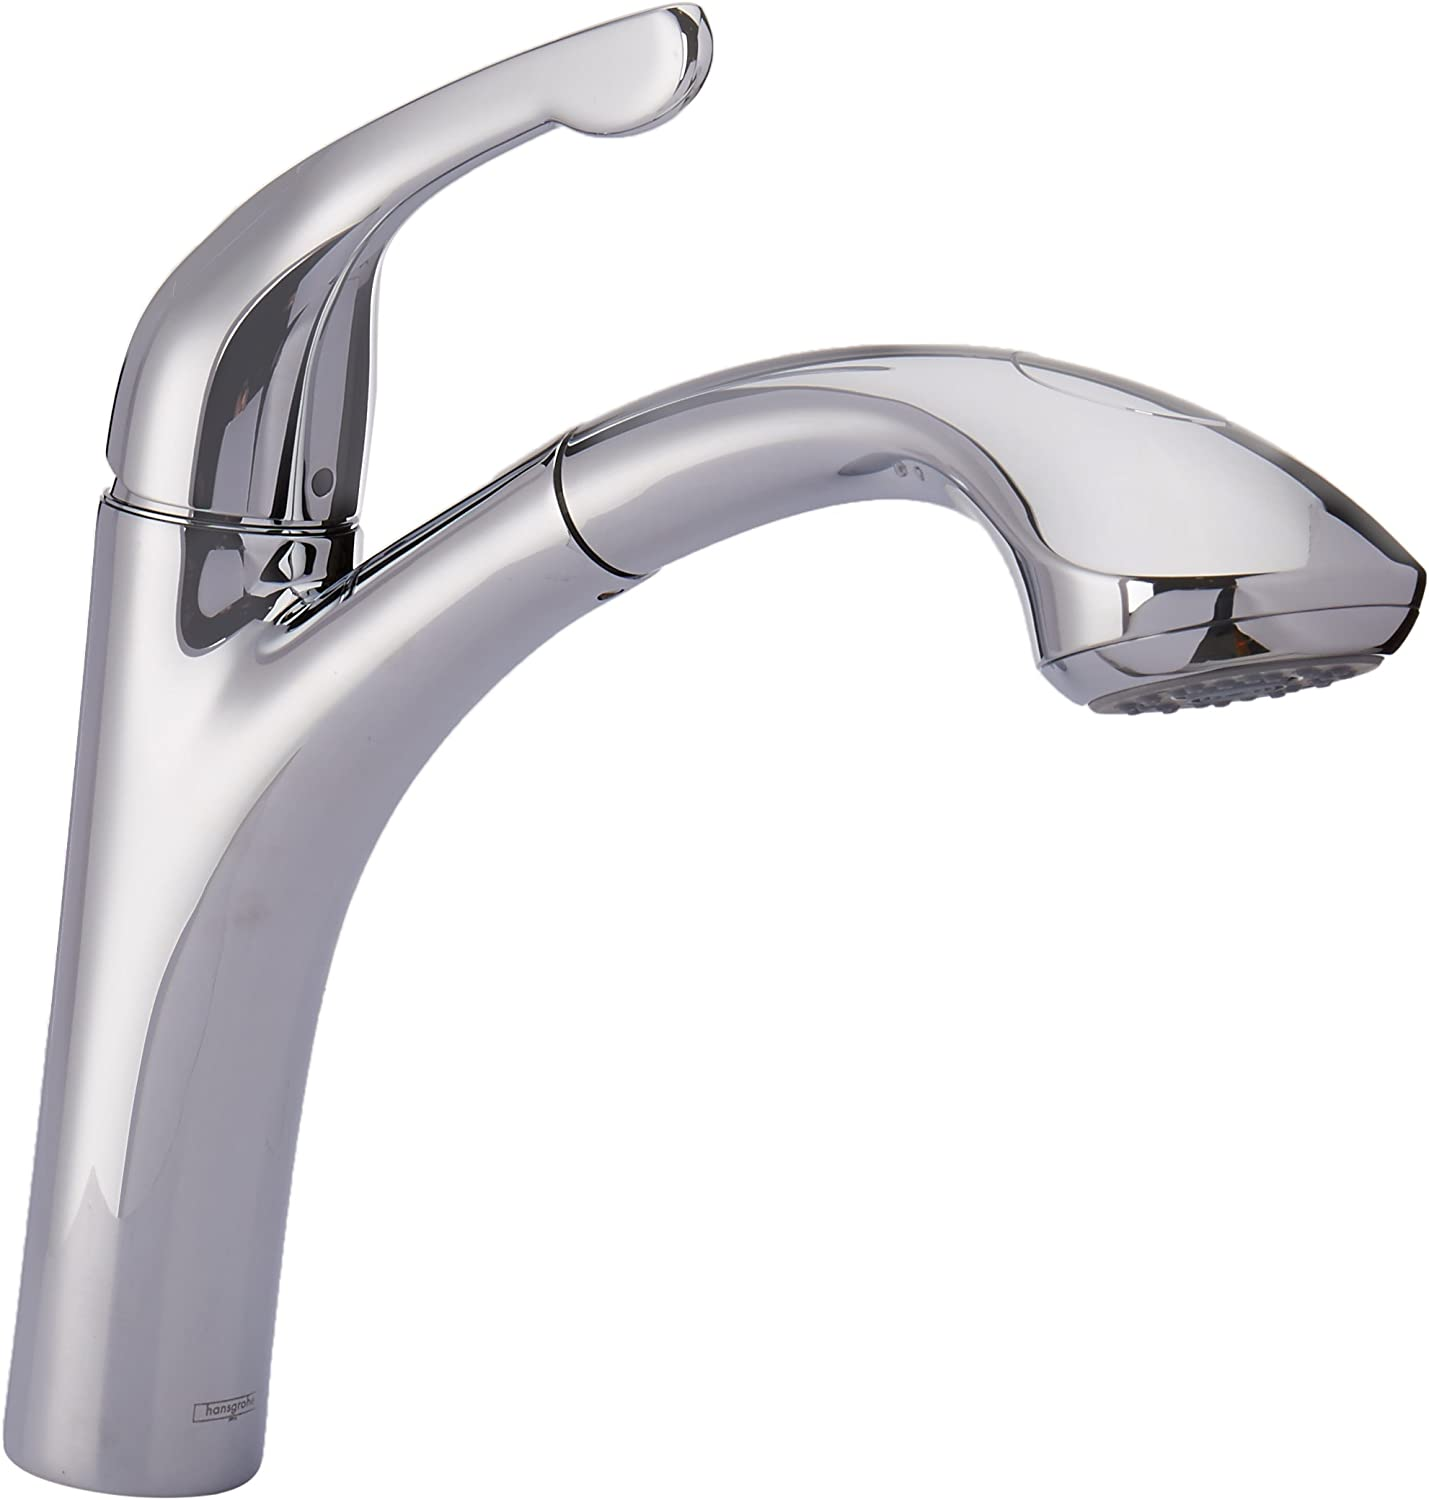 Hansgrohe Allegro E Premium 1 Handle 13 Inch Tall Kitchen Faucet With Pull Down Sprayer With Quickclean In Chrome 04076000 Touch On Kitchen Sink Faucets Amazon Com